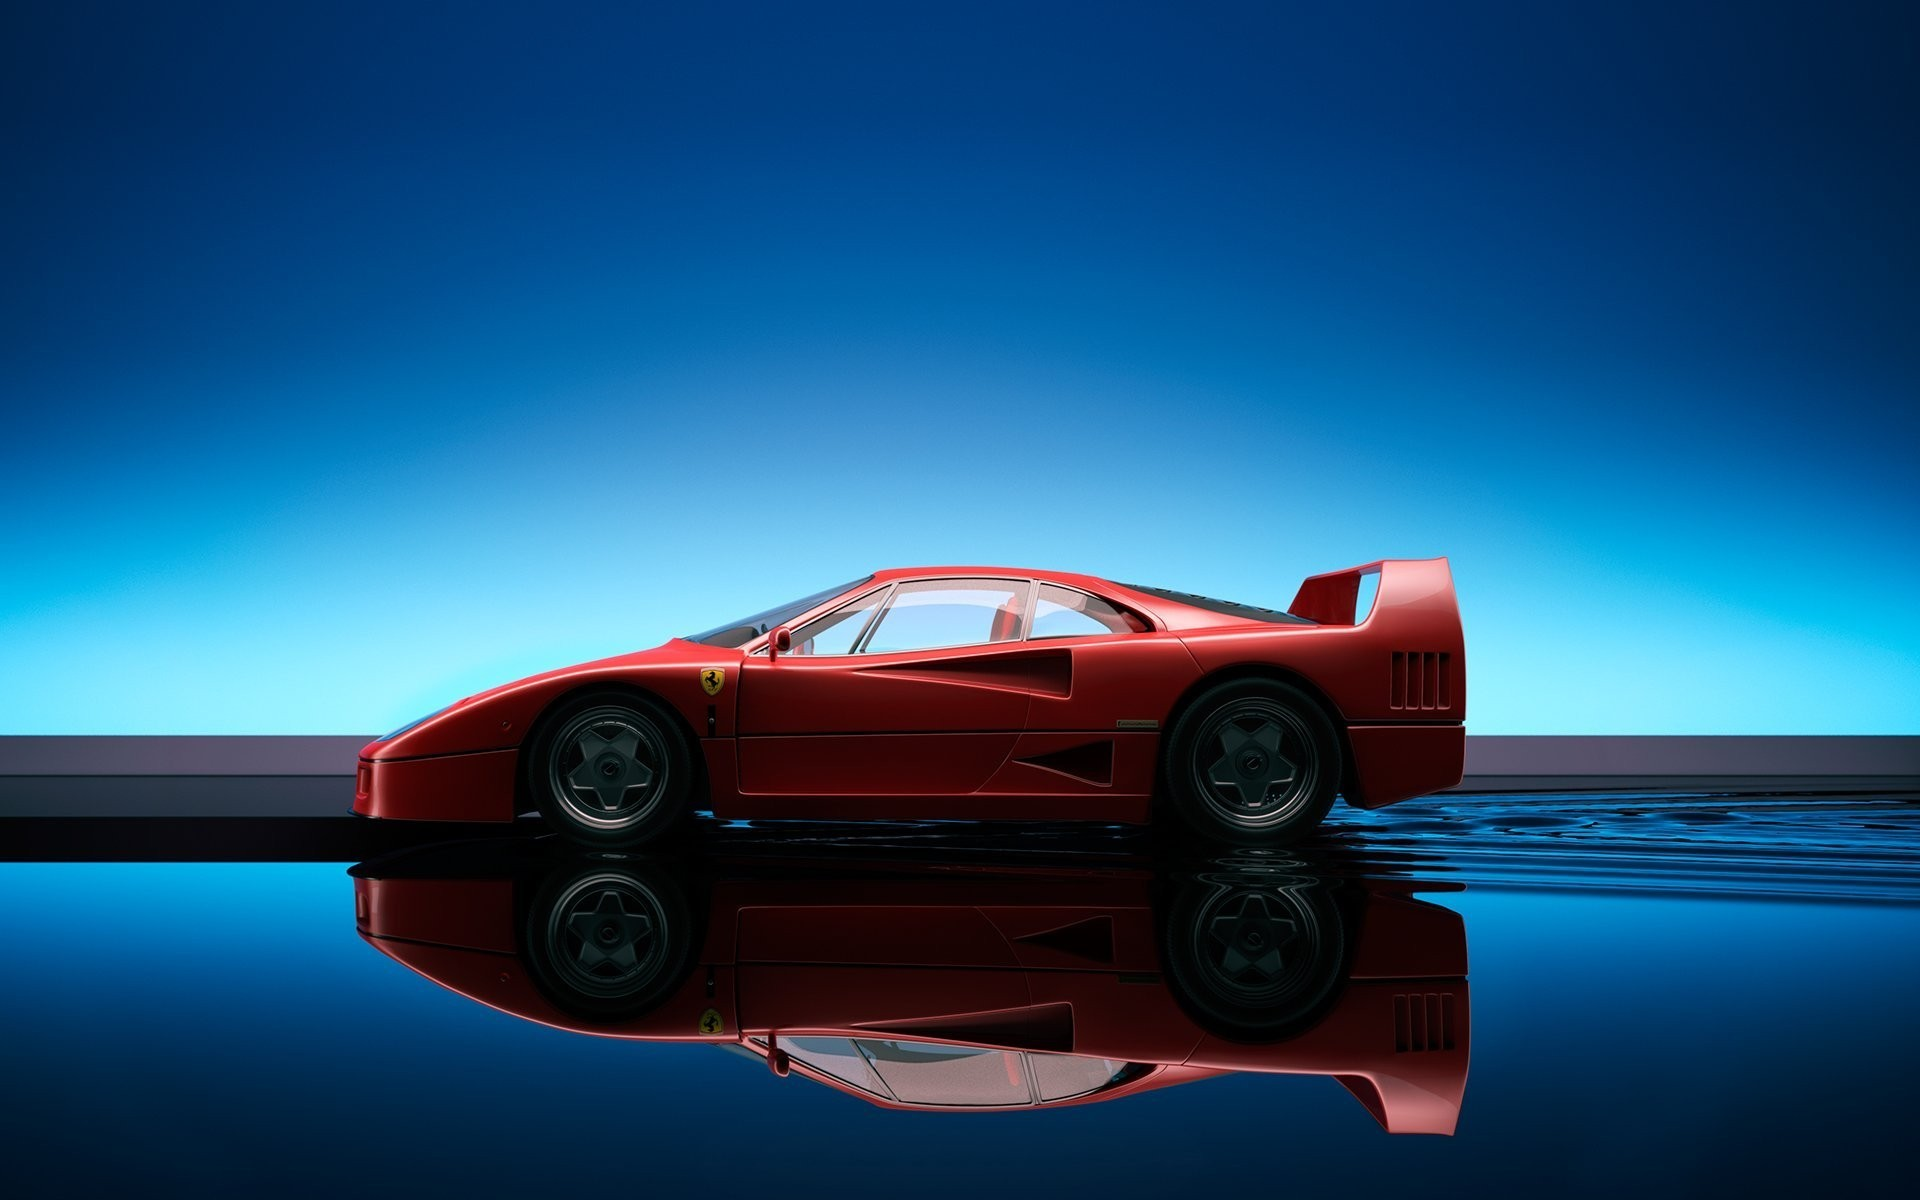 1920x1200 Adorable HDQ Backgrounds of Ferrari F40,